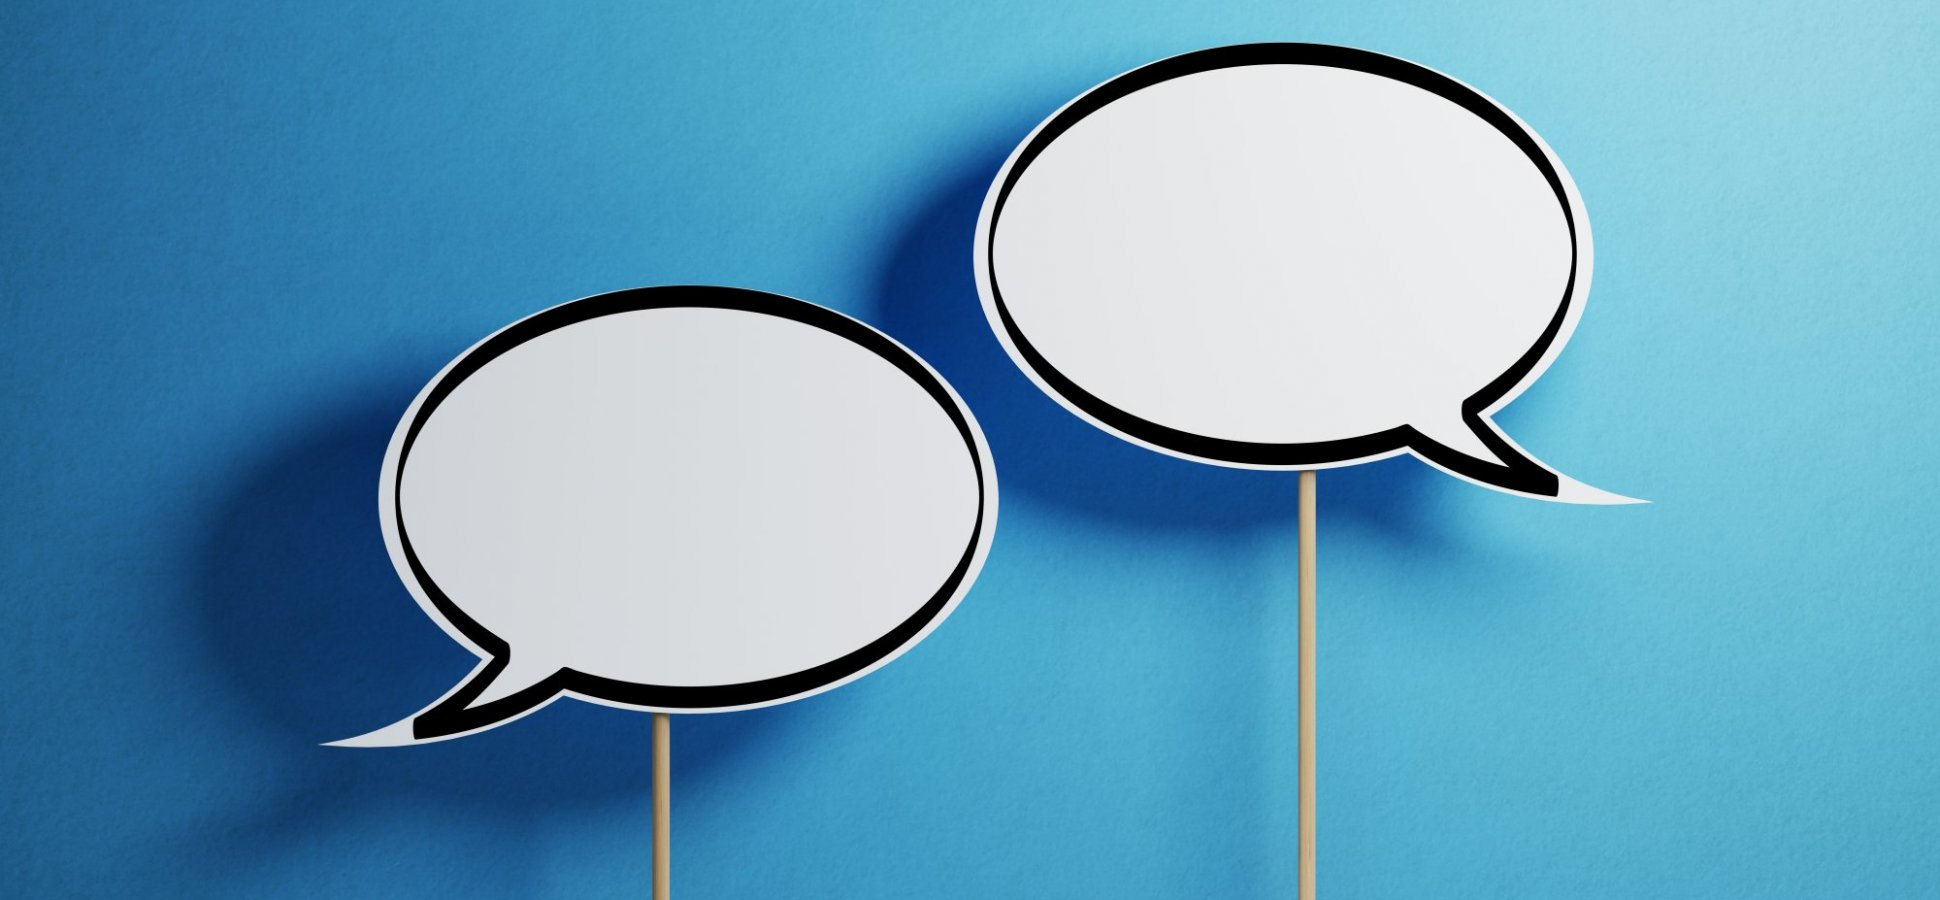 11 Questions Interesting People Always Ask to Spark Great Conversations